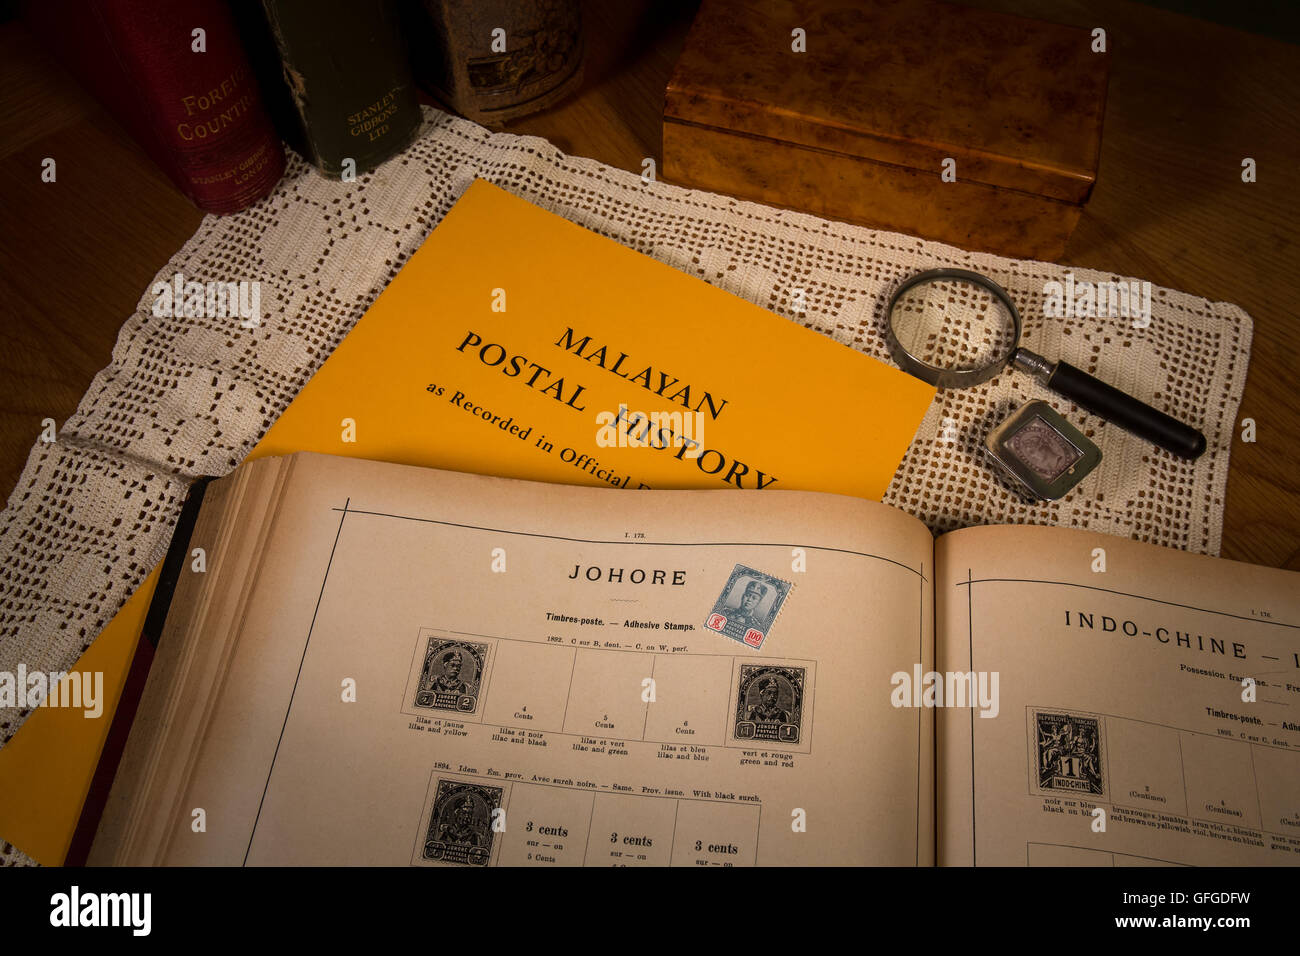 Stamp collecting as a pastime with rare and expensive stamps and High catalogue values - Stock Image